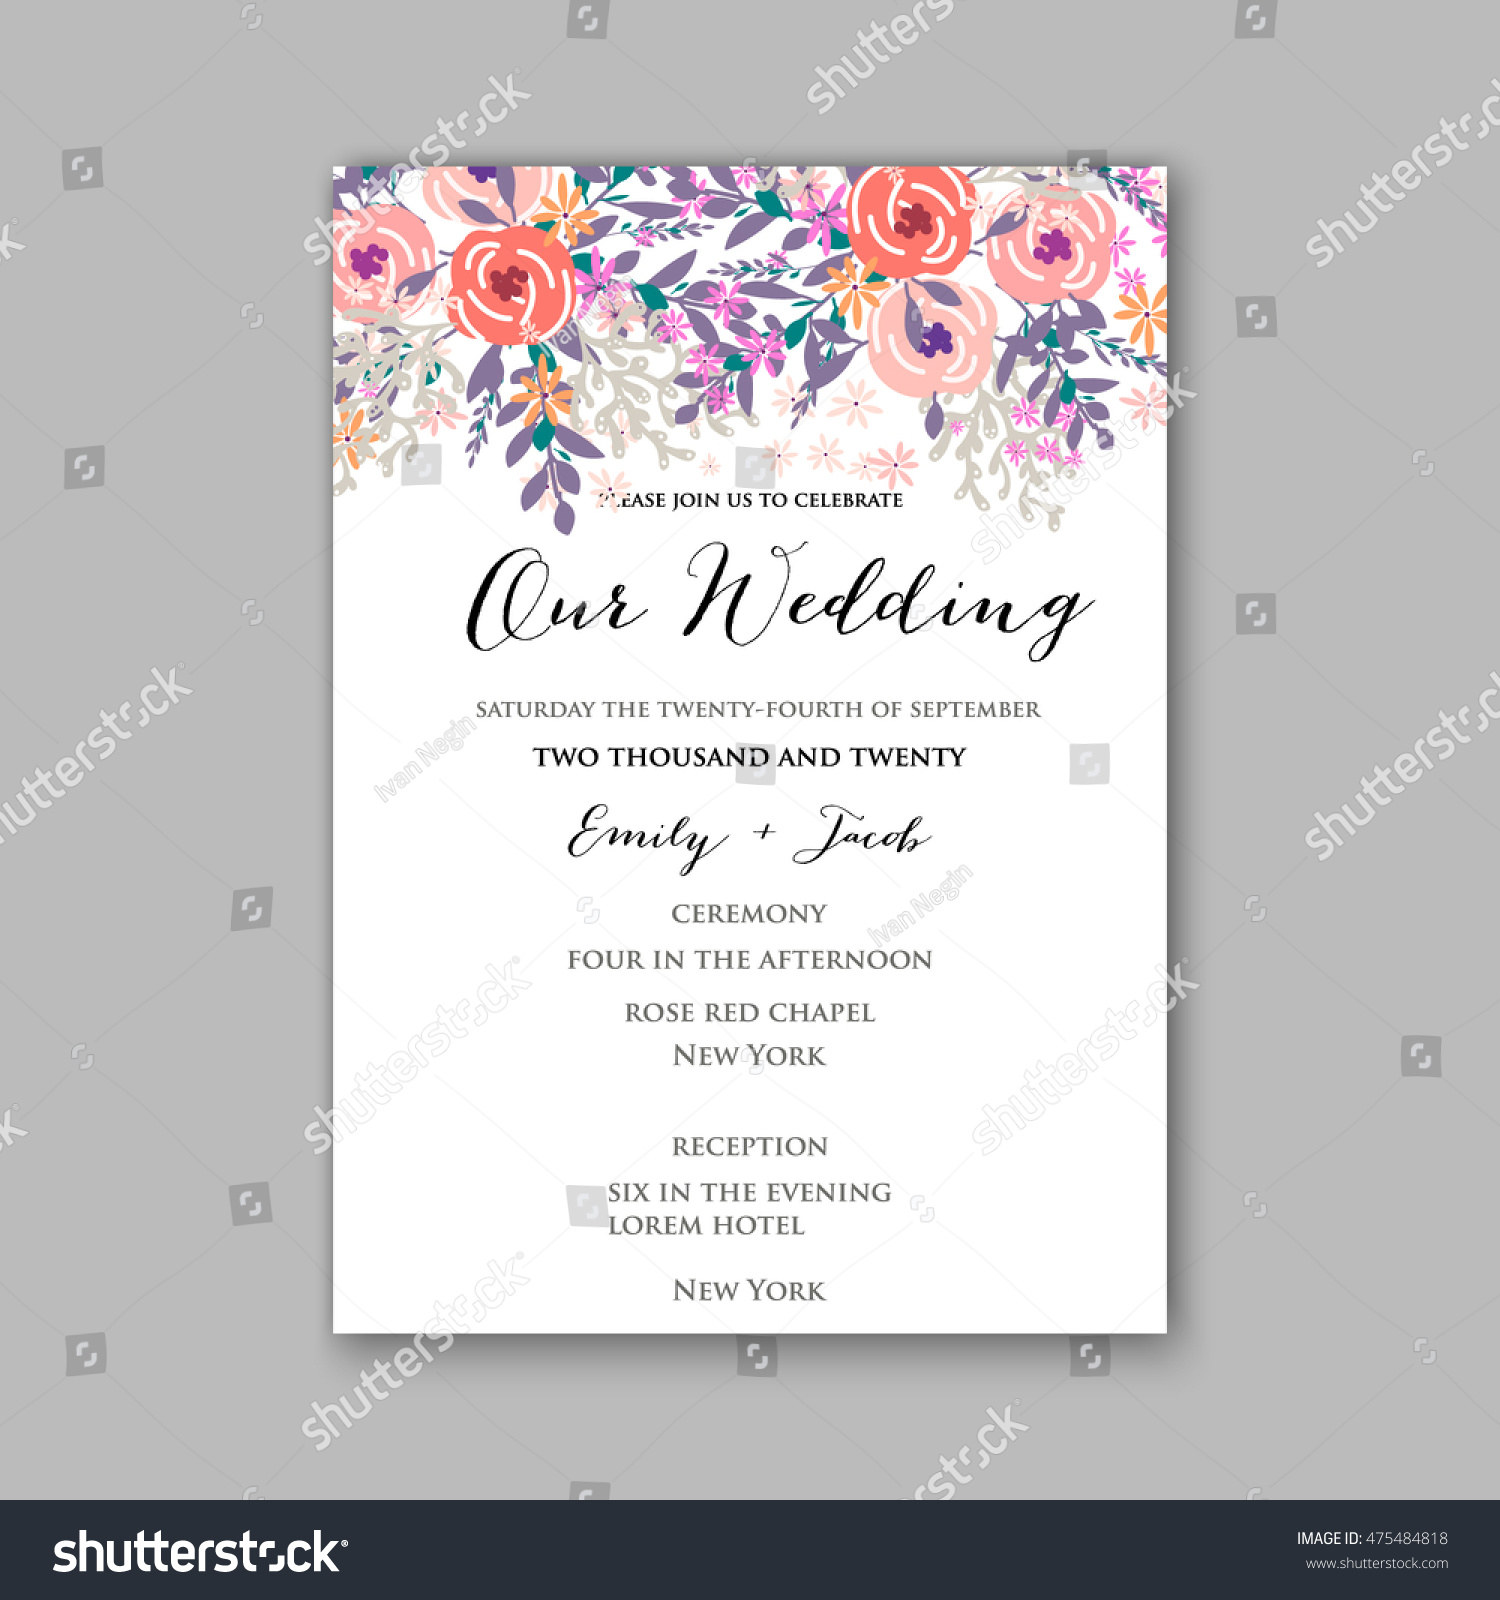 Wedding Invitation Card Tropical Floral Background Stock Vector ...